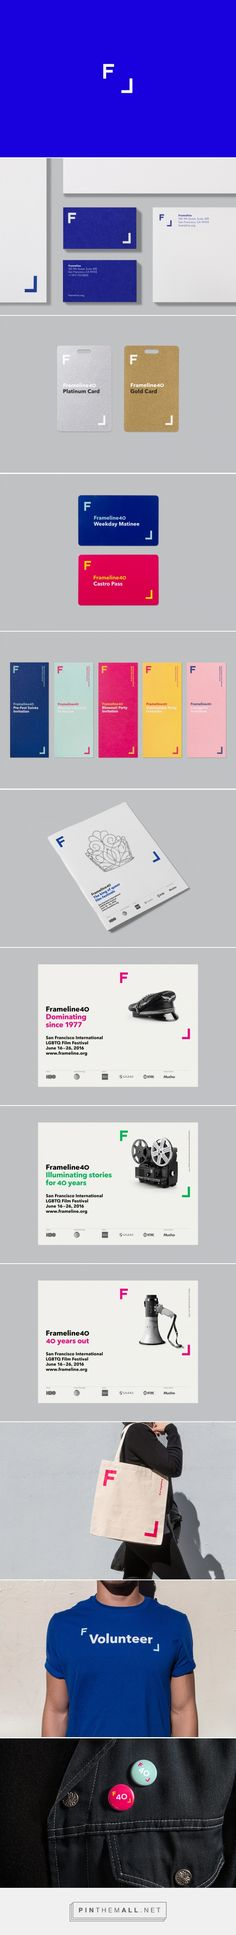 Frameline by Mucho